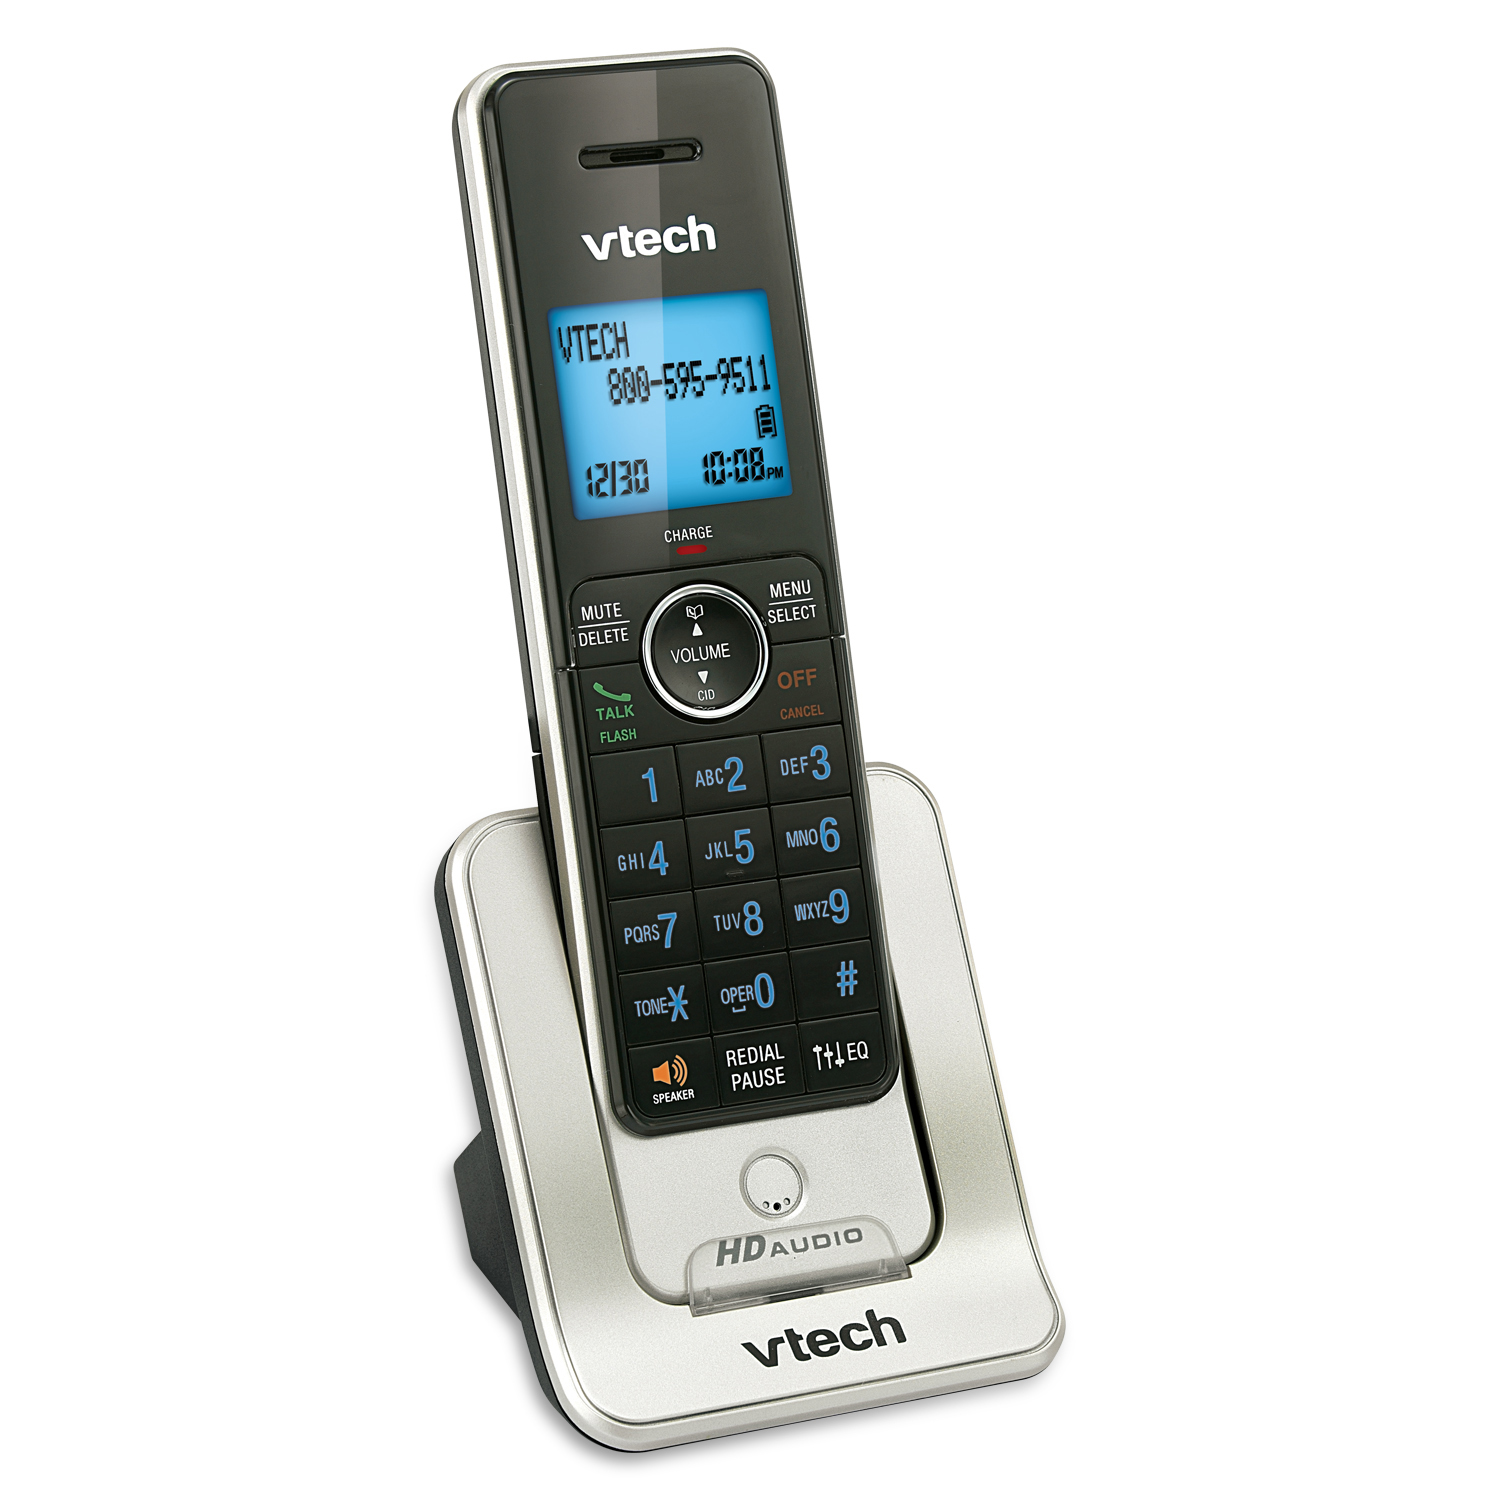 vtech 3-handset dect 6.0 cordless phone with answering machine (ls6425-3)